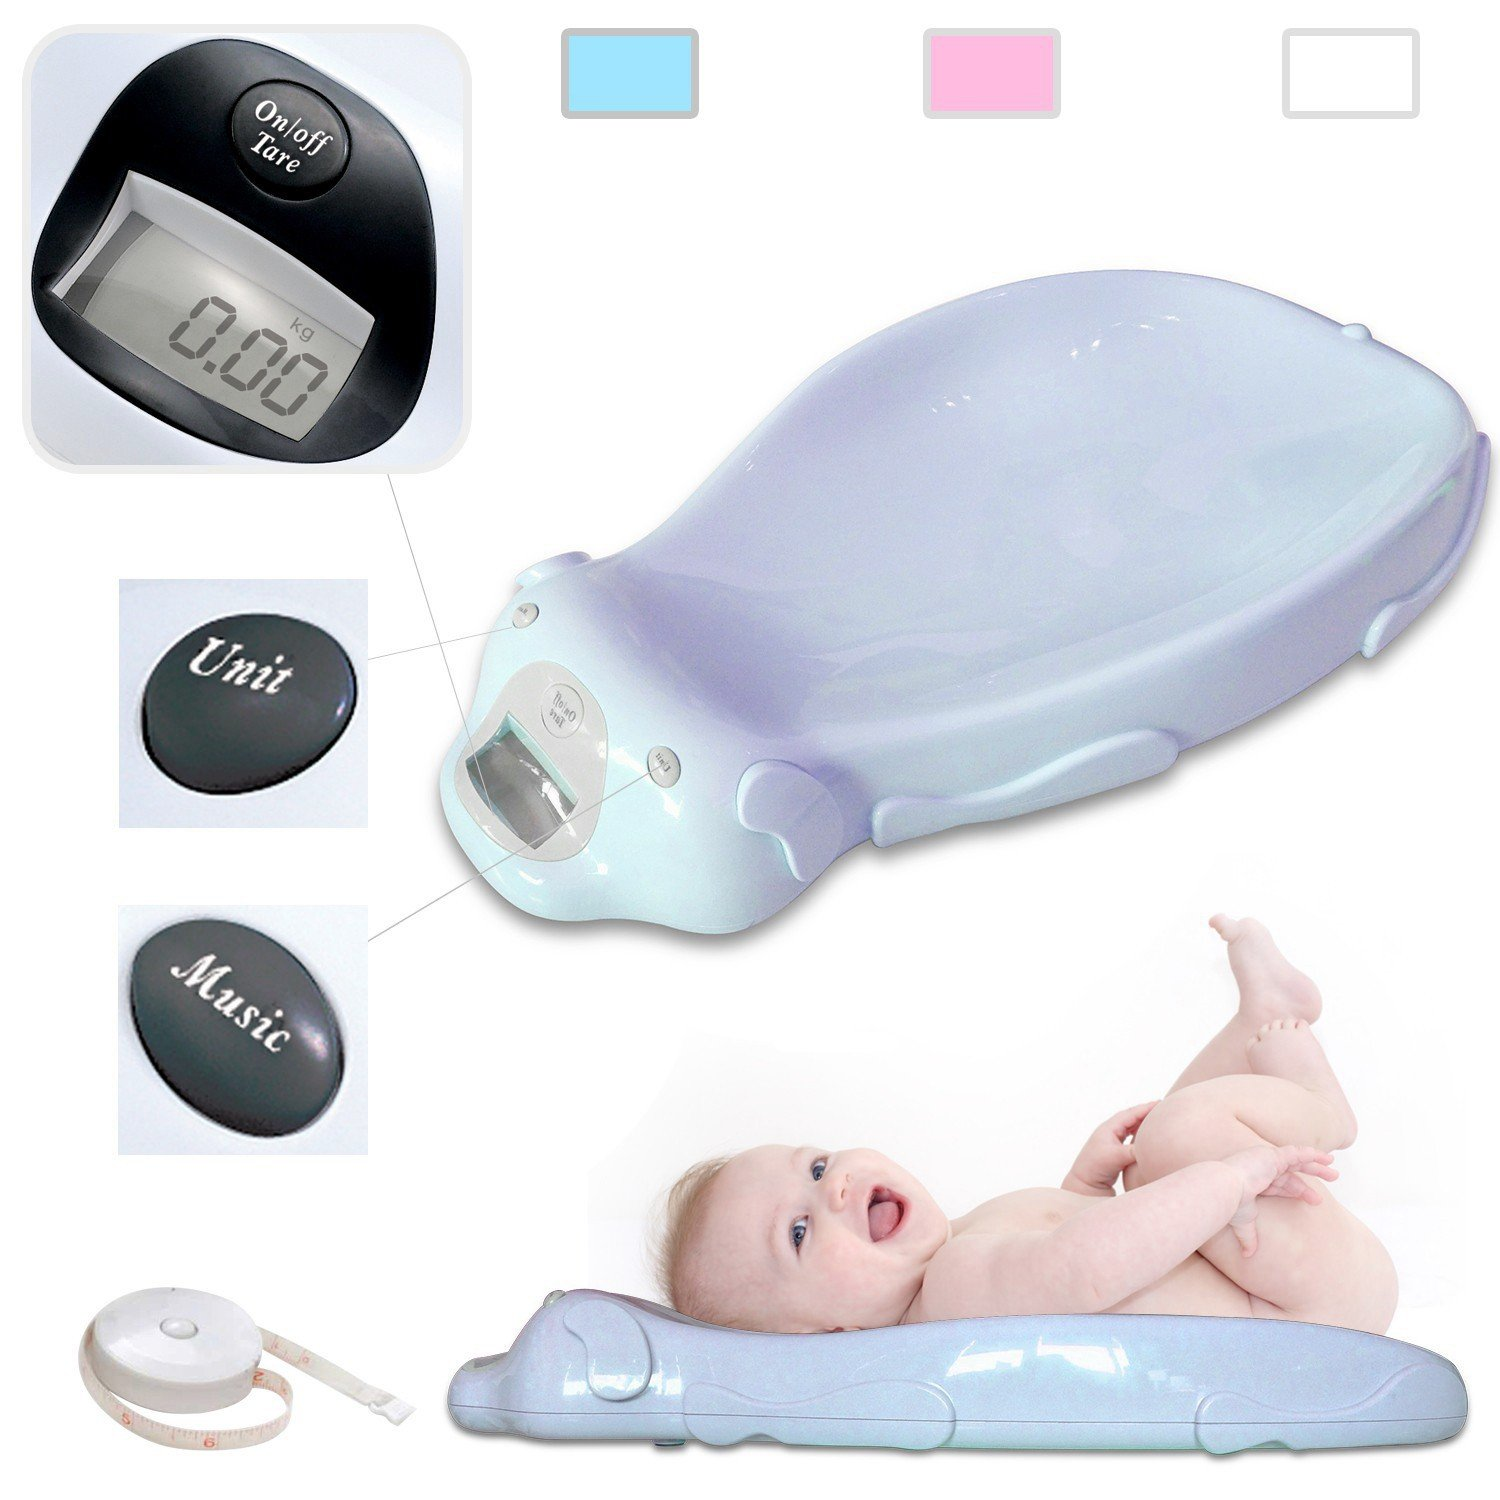 Todeco - Baby Scale, Electric Baby Scale - Size: 65.4 x 33.2 x 11.6 cm - Maximum load: 44 lbs - White FR1HEA600031-W